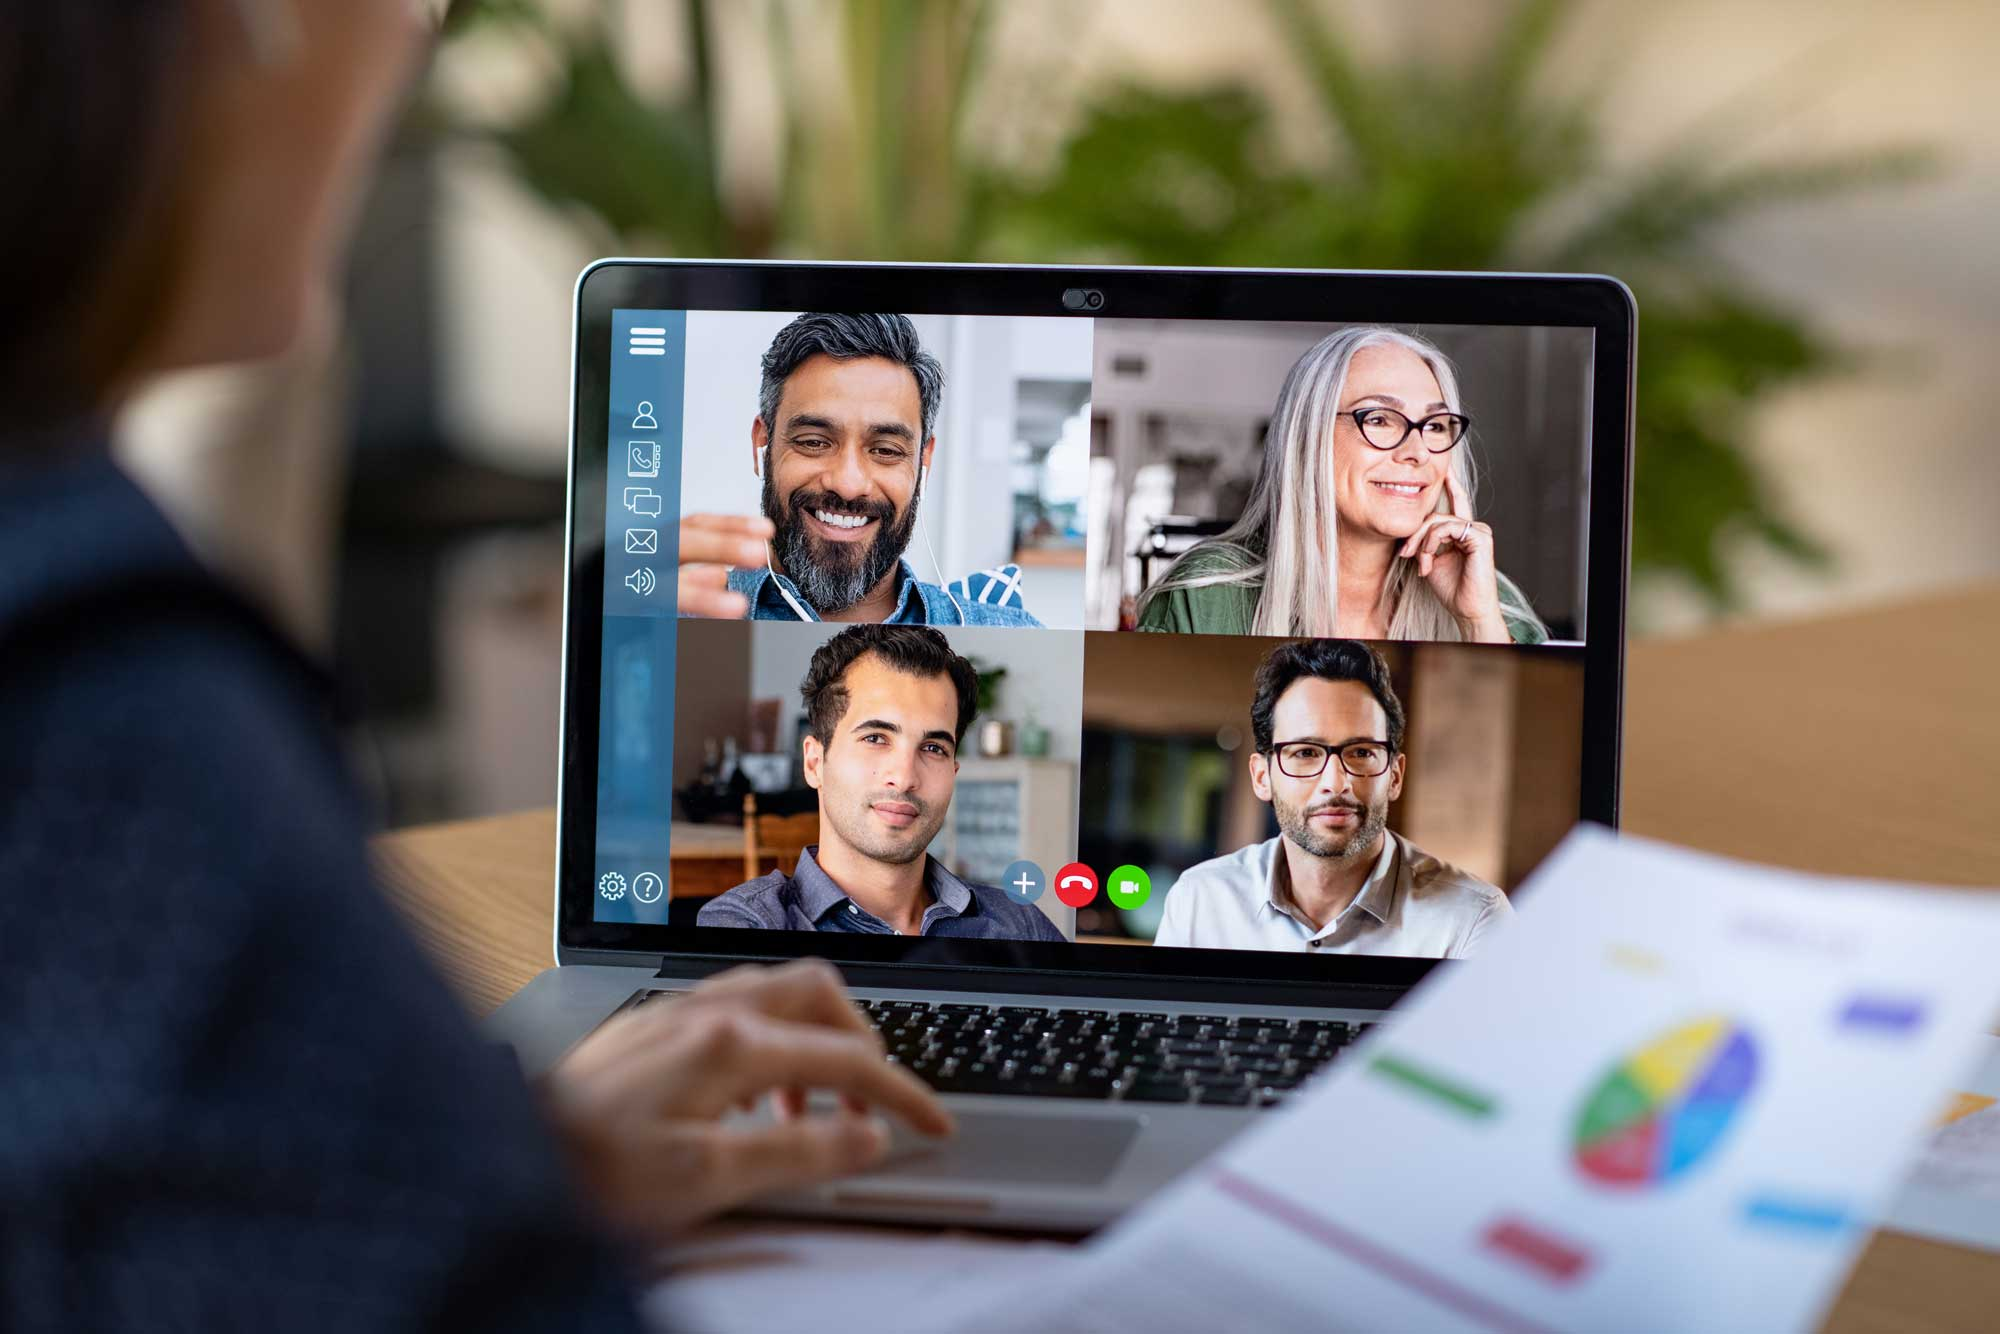 Video conference - Remote working